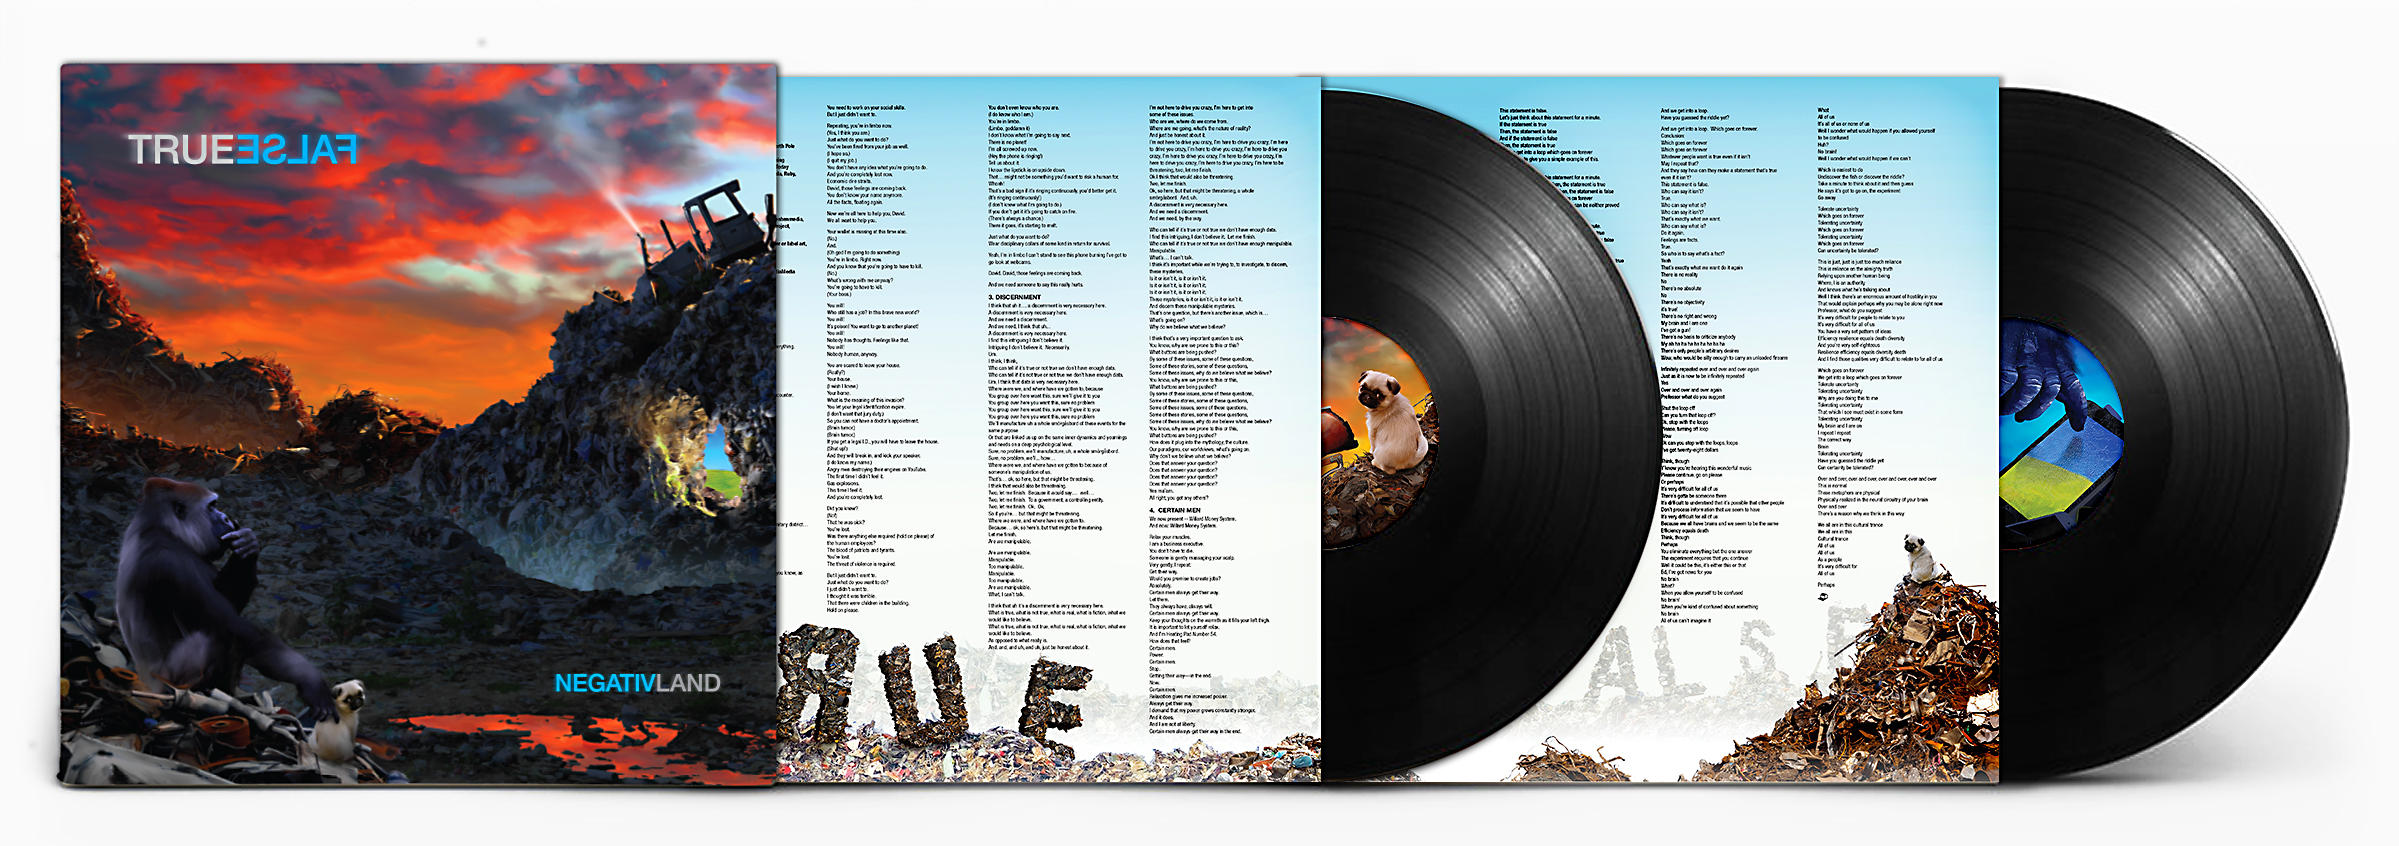 """TWO WORDS THAT DESCRIBE THE SAME THING: NEGATIVLAND'S NEW ALBUM IS TRUE FALSE - Help us help you hear Negativland's new album, True False. Your purchase today of this double vinyl album will help fund the printing and pressing costs of getting this thing made and into your hands by early fall. Your advance purchase of the LP directly from us will come with two """"advance-purchase-only"""" thank you goodies and will ship to arrive October 25th, 2019. Scroll down for more details on the album and the goodies."""